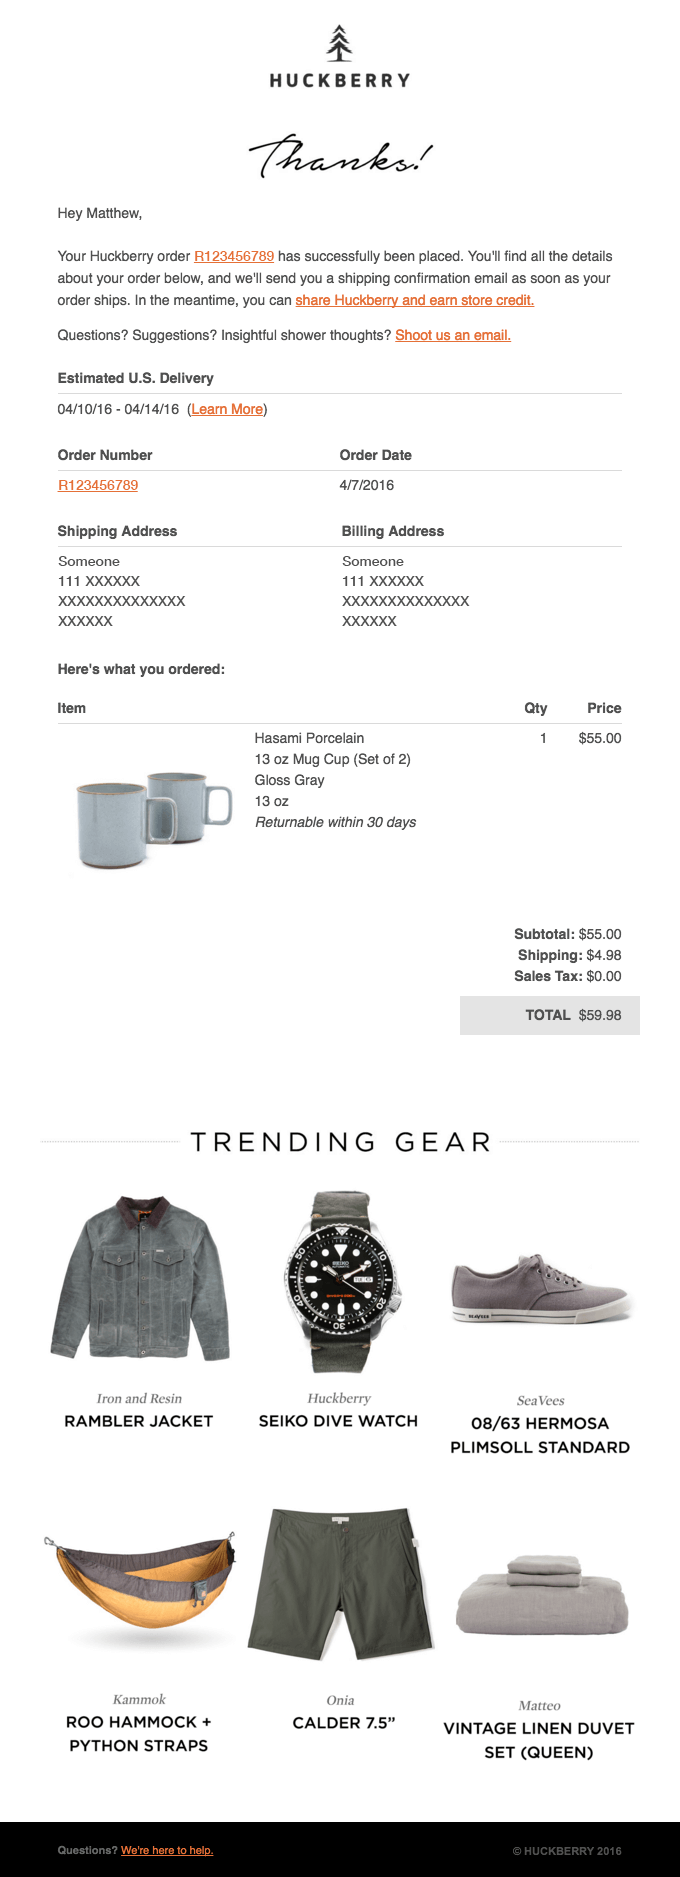 Huckberry order confirmation email